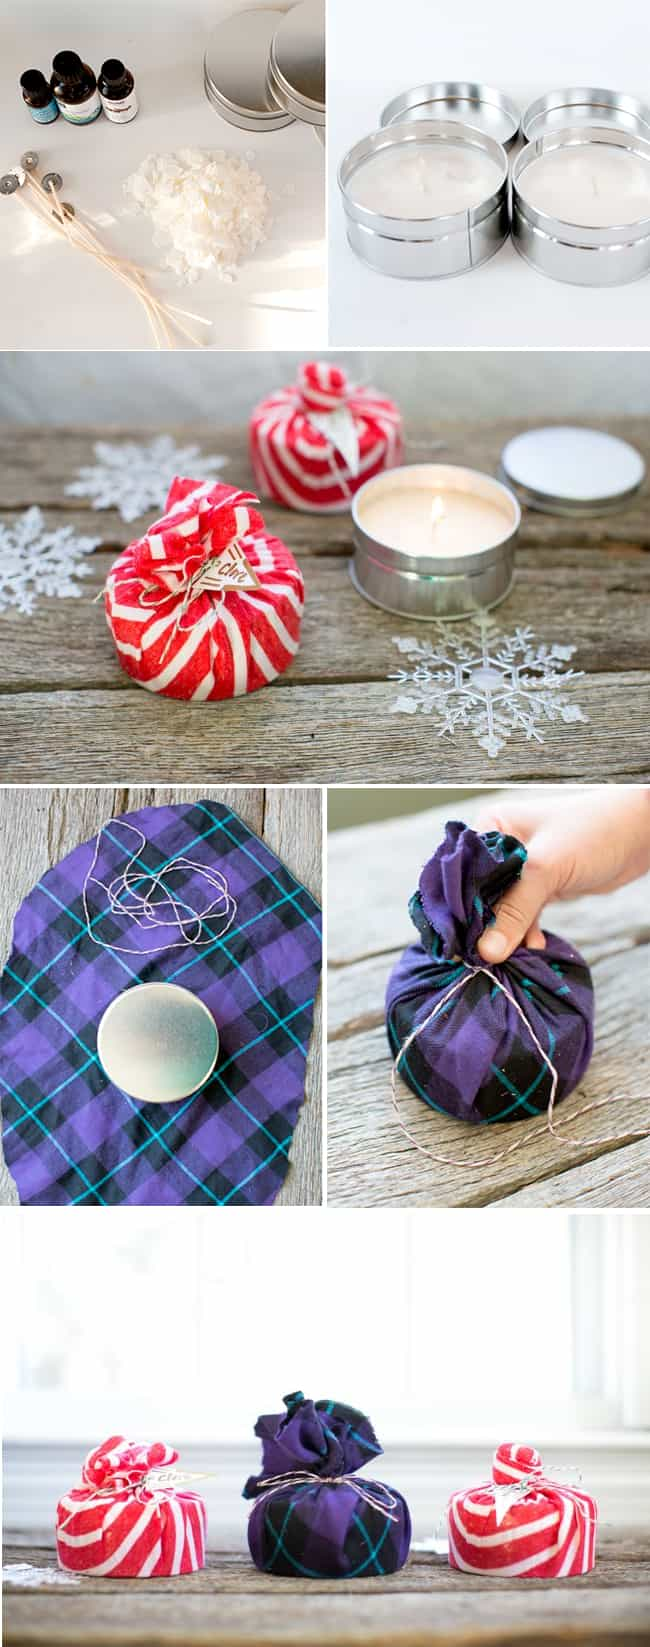 Perfect Hostess Gift! DIY Soy Wax Candles